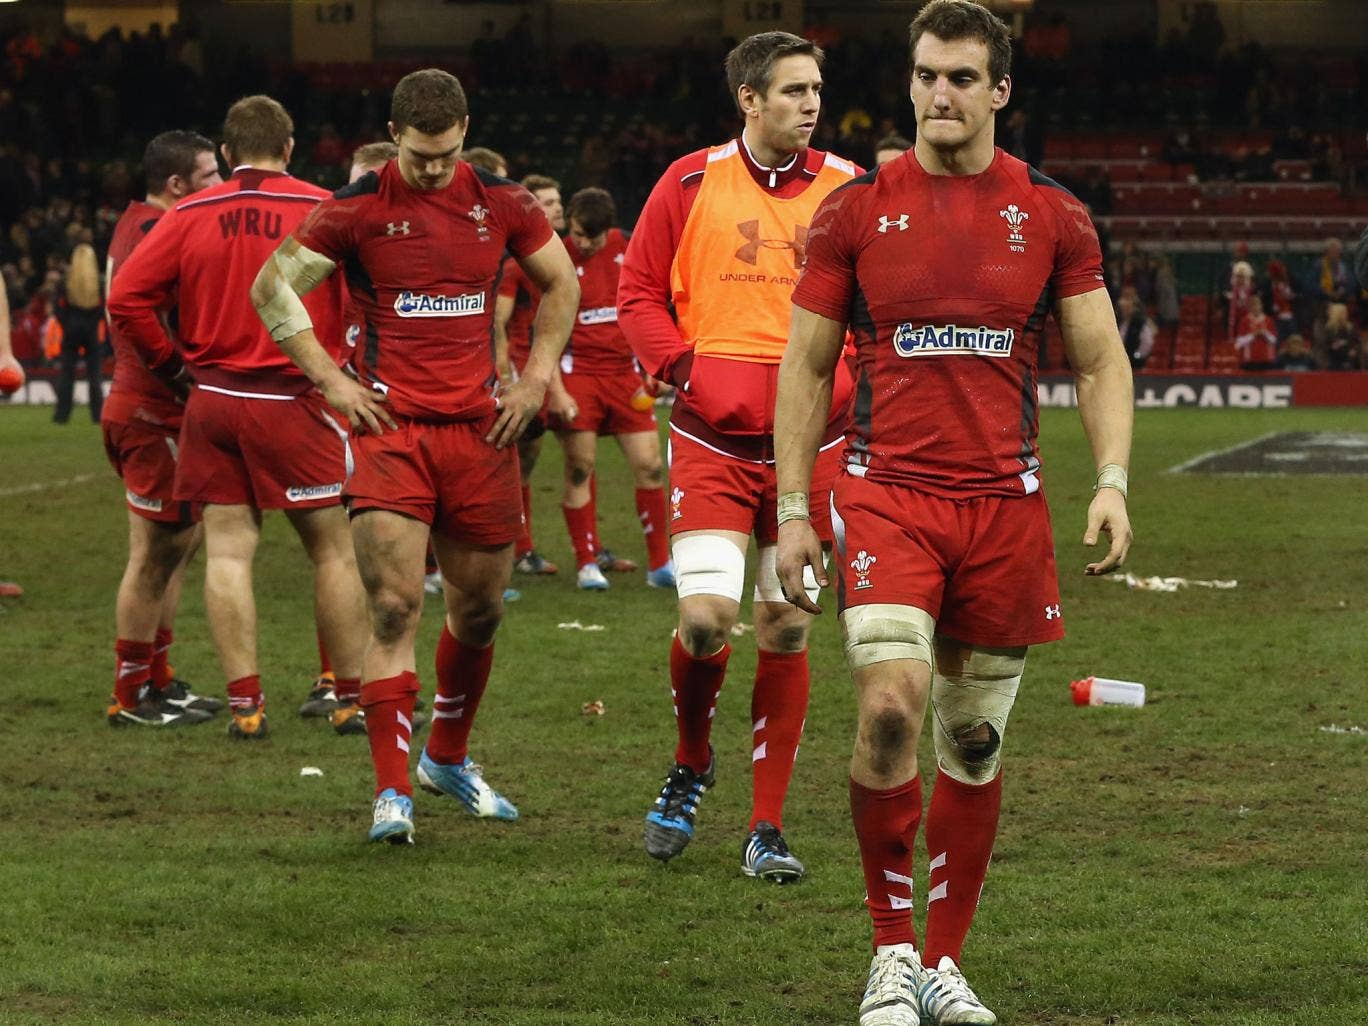 Wales captain Sam Warburton has been named in the squad for the Six Nations despite missing the last few weeks through injury